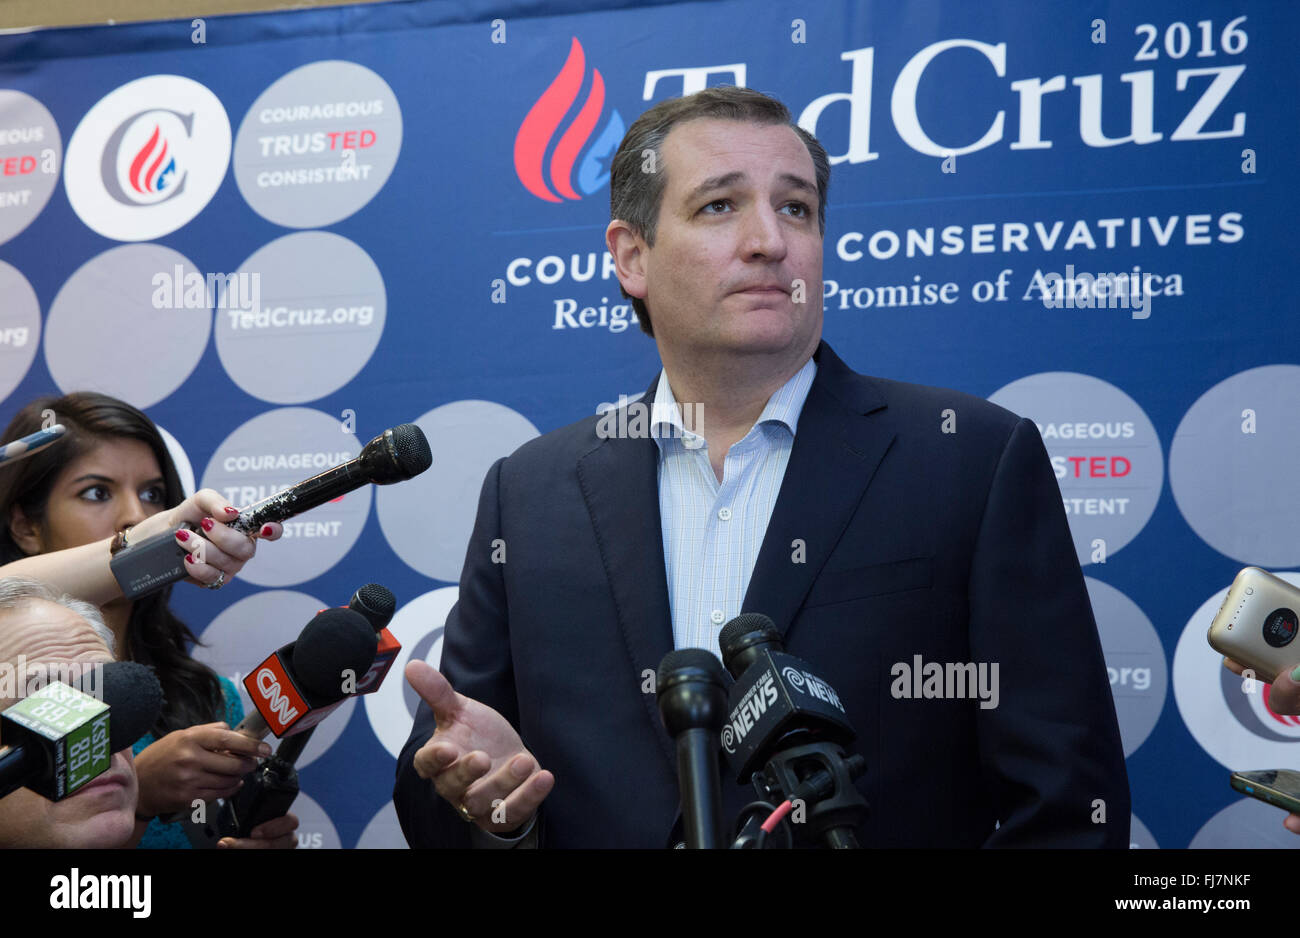 San Antonio, Texas USA. 29th February, 2016. Republican challenger Ted Cruz makes a final push with several Texas stops on the night before the Super Tuesday primaries.  Cruz appeared with former Texas Gov. Rick Perry and current Gov. Greg Abbott while speaking to about 1,000 supporters in north San Antonio. Credit:  Bob Daemmrich/Alamy Live News Stock Photo